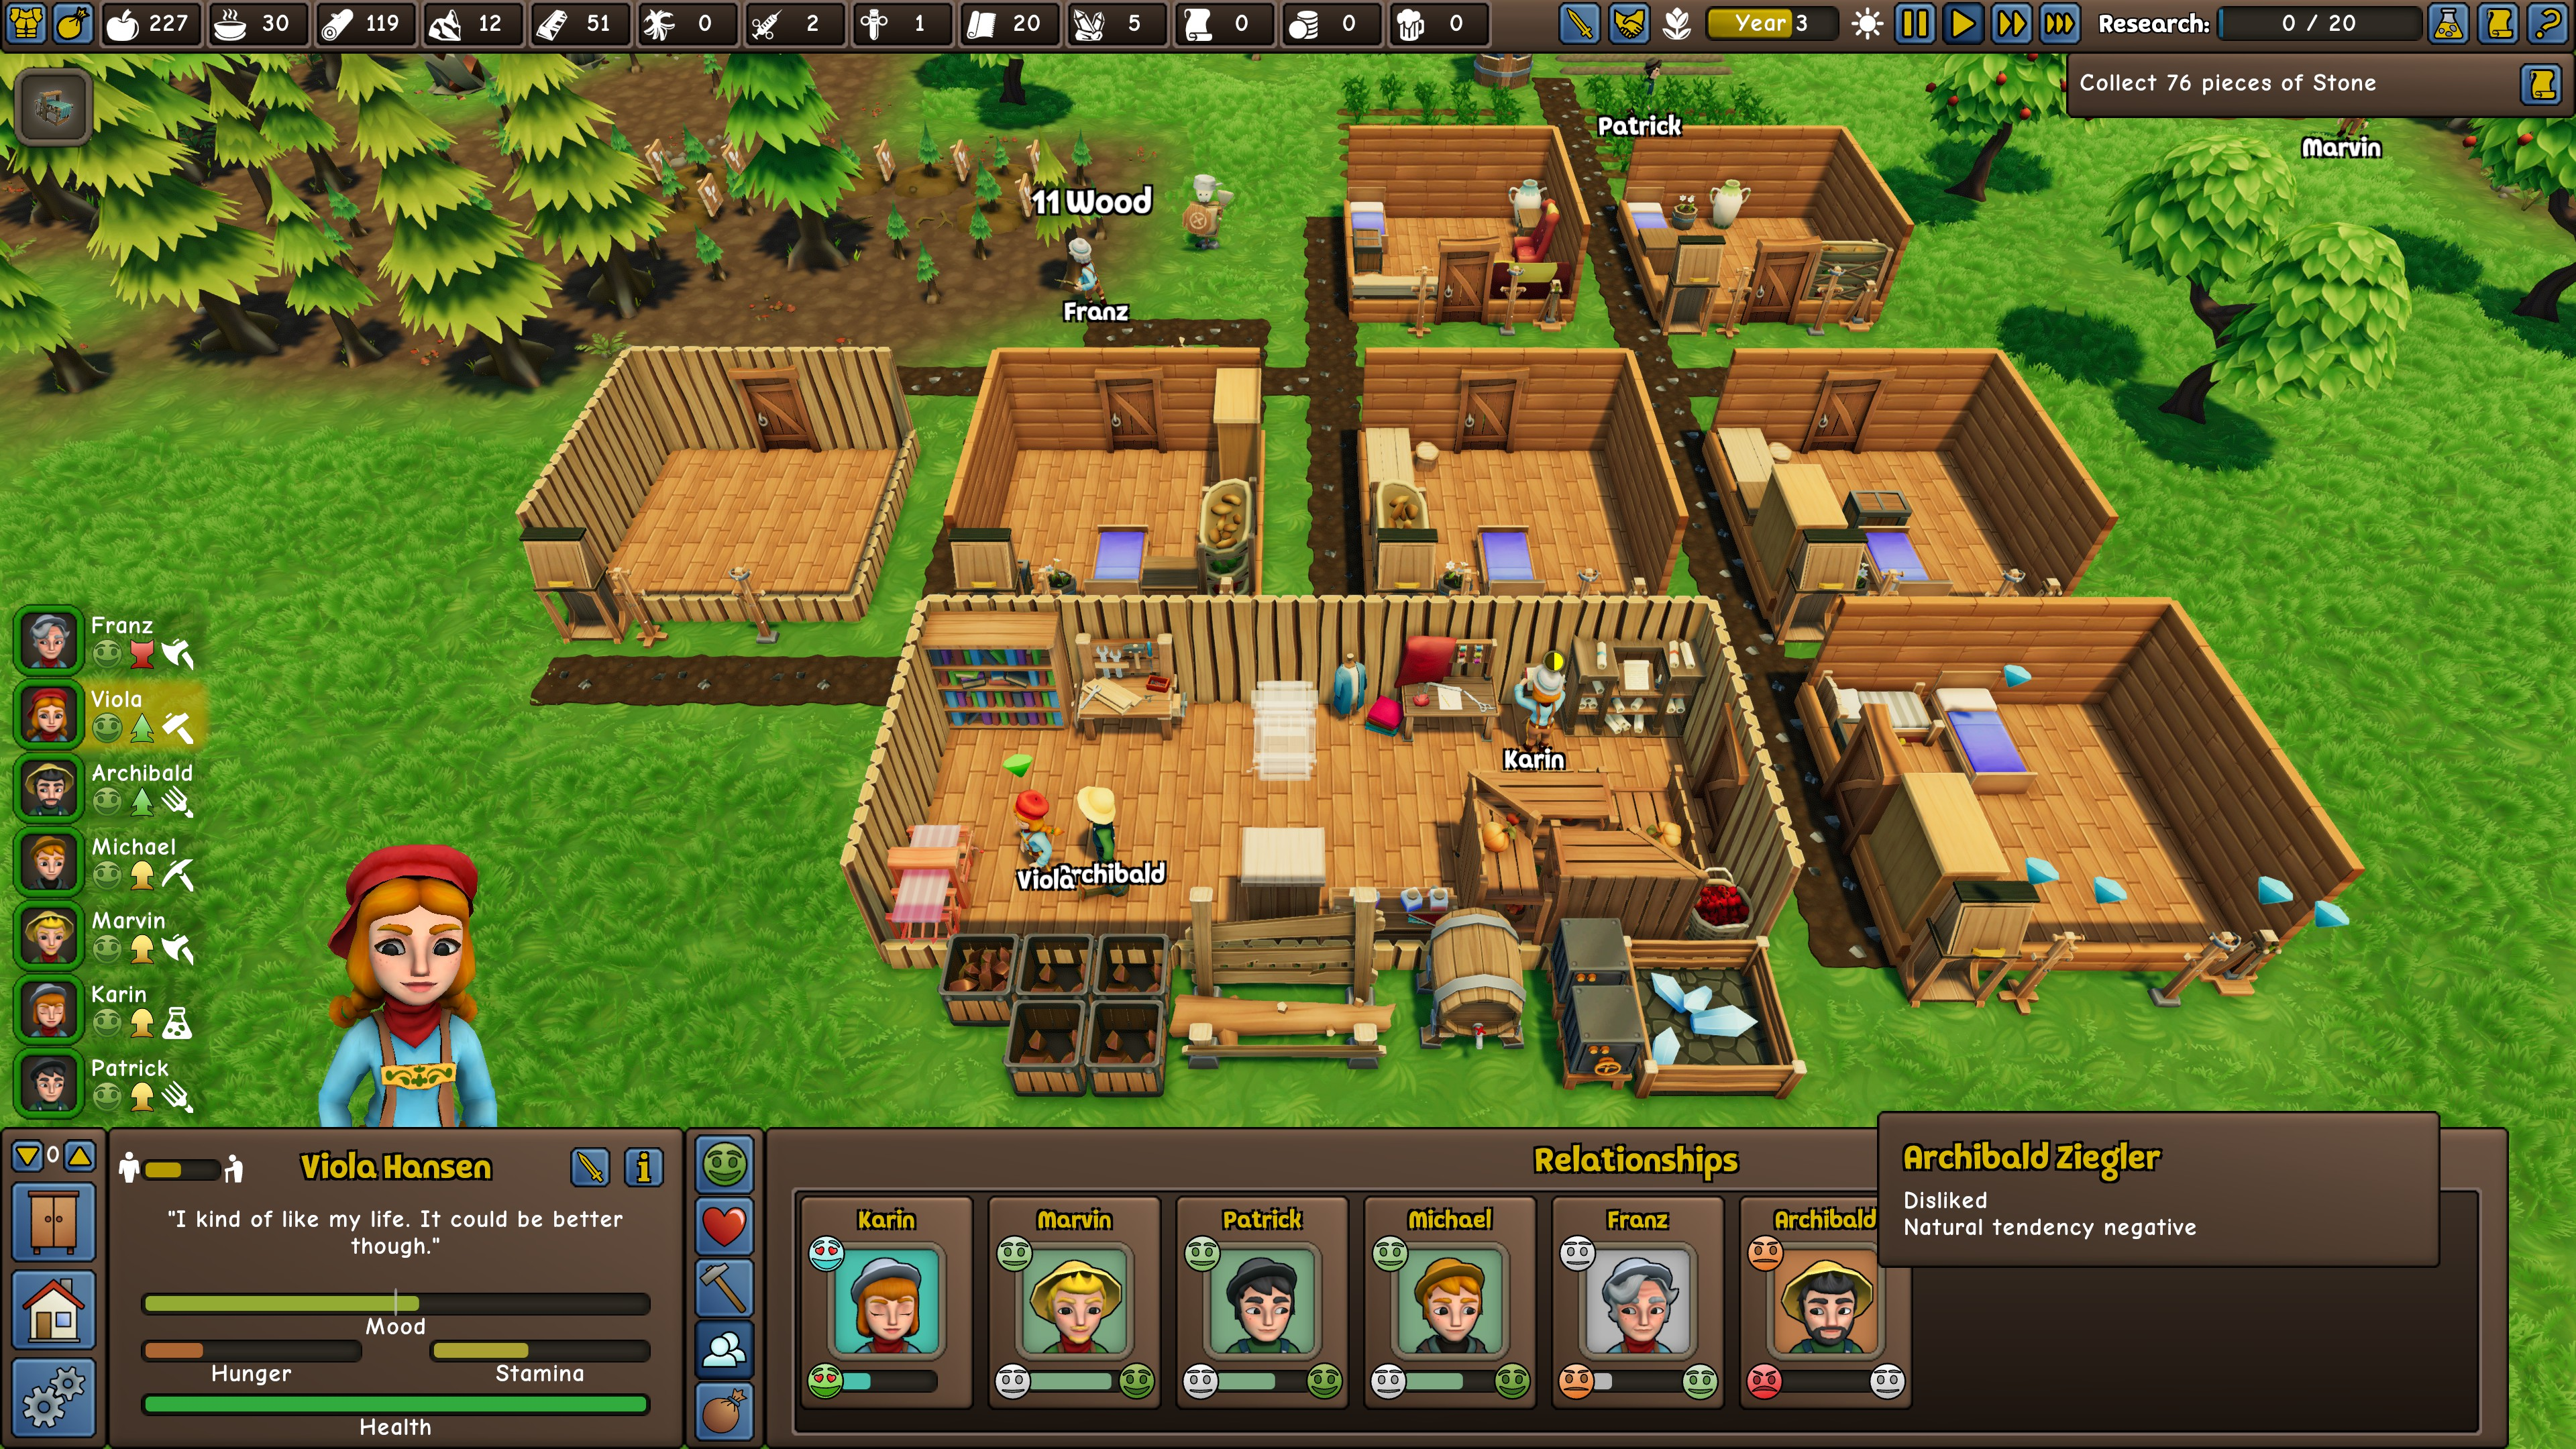 Founder's Fortune. Viewing a 7 person colony in the springtime. Colonist Viola Hansen is currently selected and her relationships with the other colonists are displayed. Including her natural tendency to dislike colonist Archibald Ziegler.